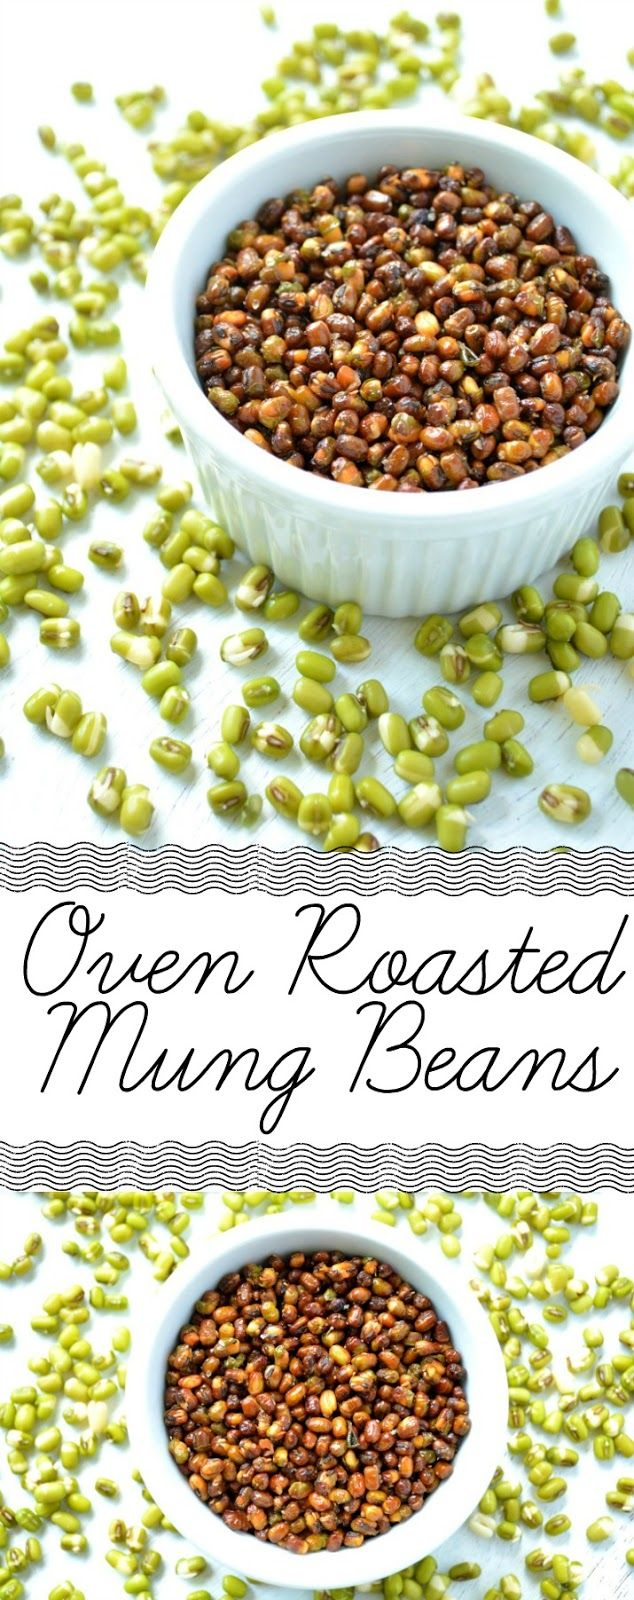 Oven Roasted Moon Dal | Mung Beans. If you like mung bean sprouts, you'll love this one a whole lot more! If you don't factor in the overnight soak, this takes just 20 minutes in the oven. Healthy snack for when the 4 o'clock munchies hit.